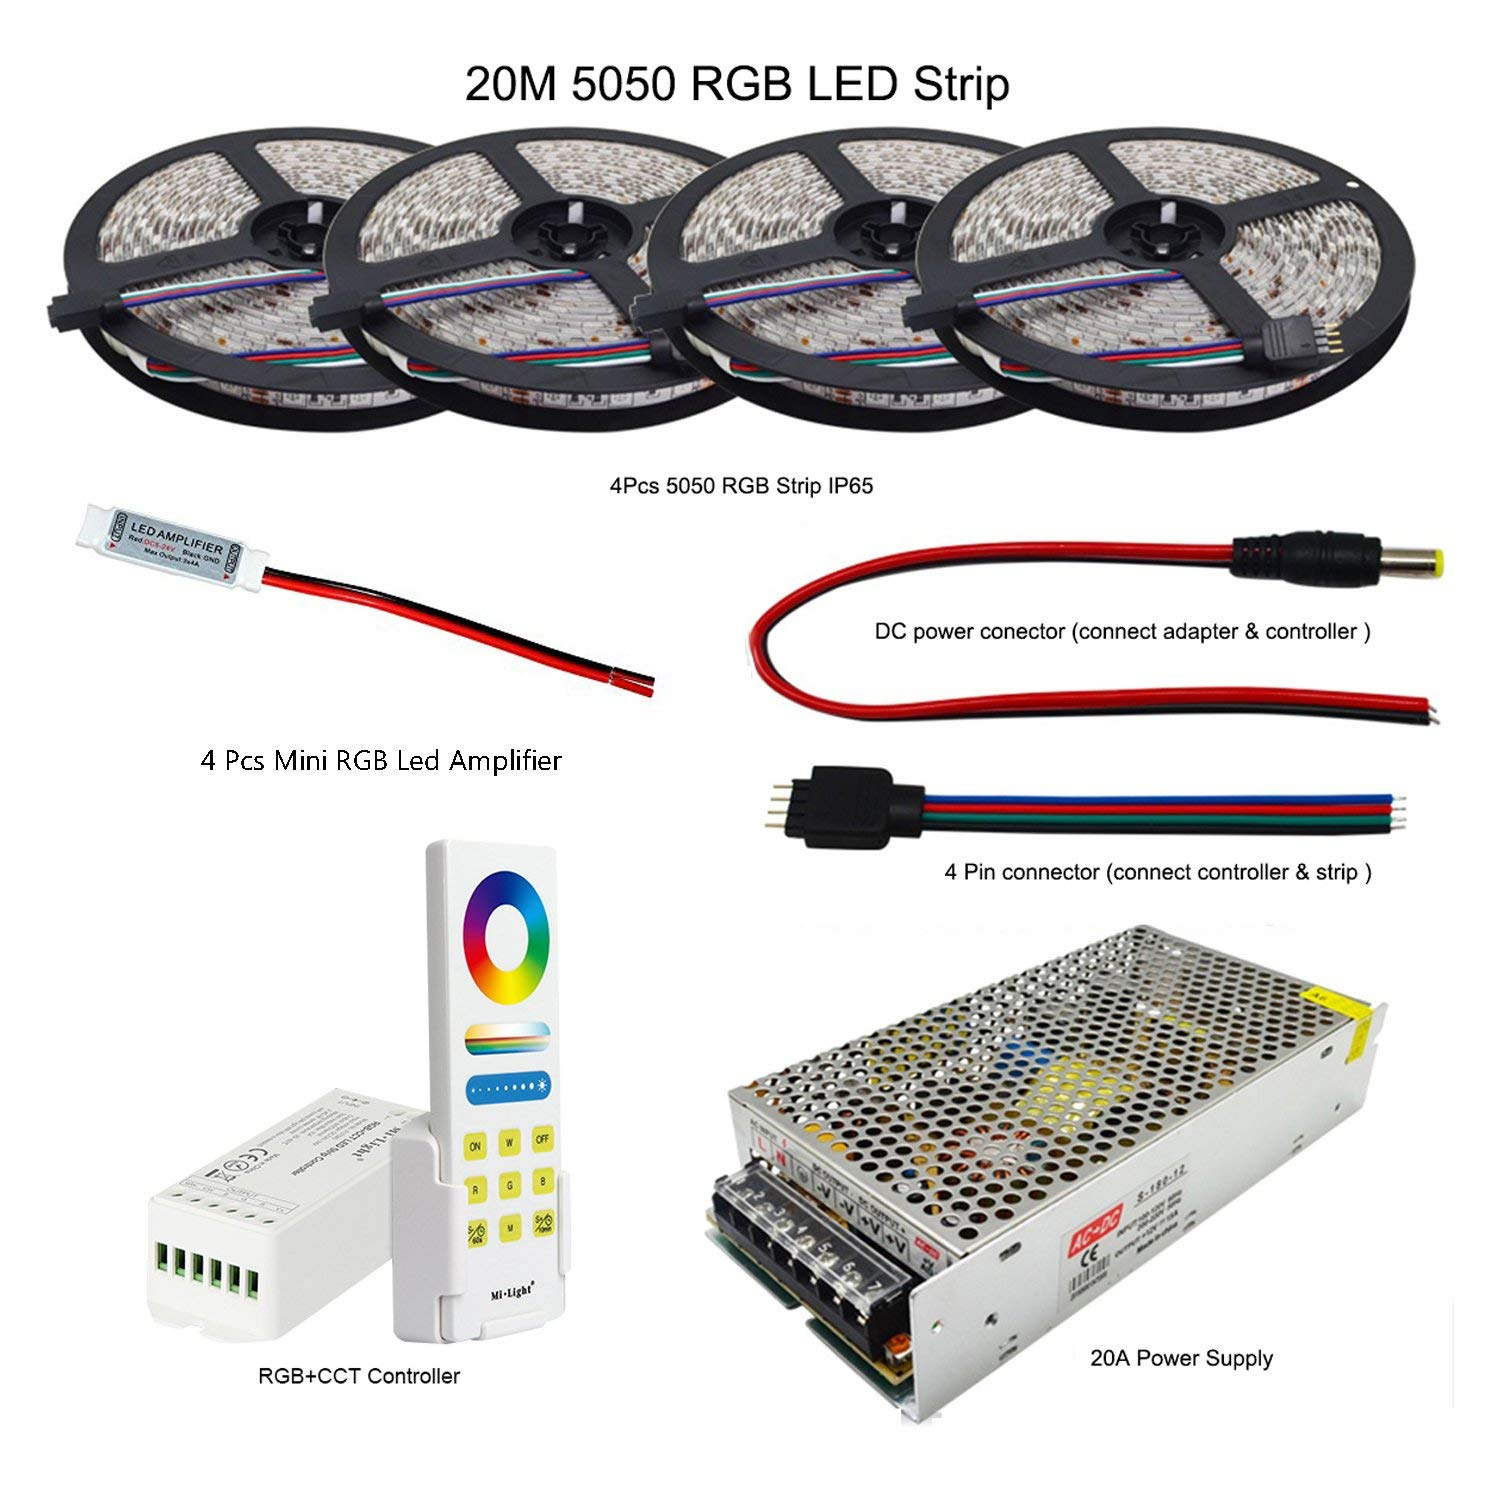 RGB LED Strip 5050 SMD Flexible Light DC 12V 60Led/m Strip Lamp+ Led Controller+Power Adapter Supply (4 in 1 line, 20m IP65 Led Strip)